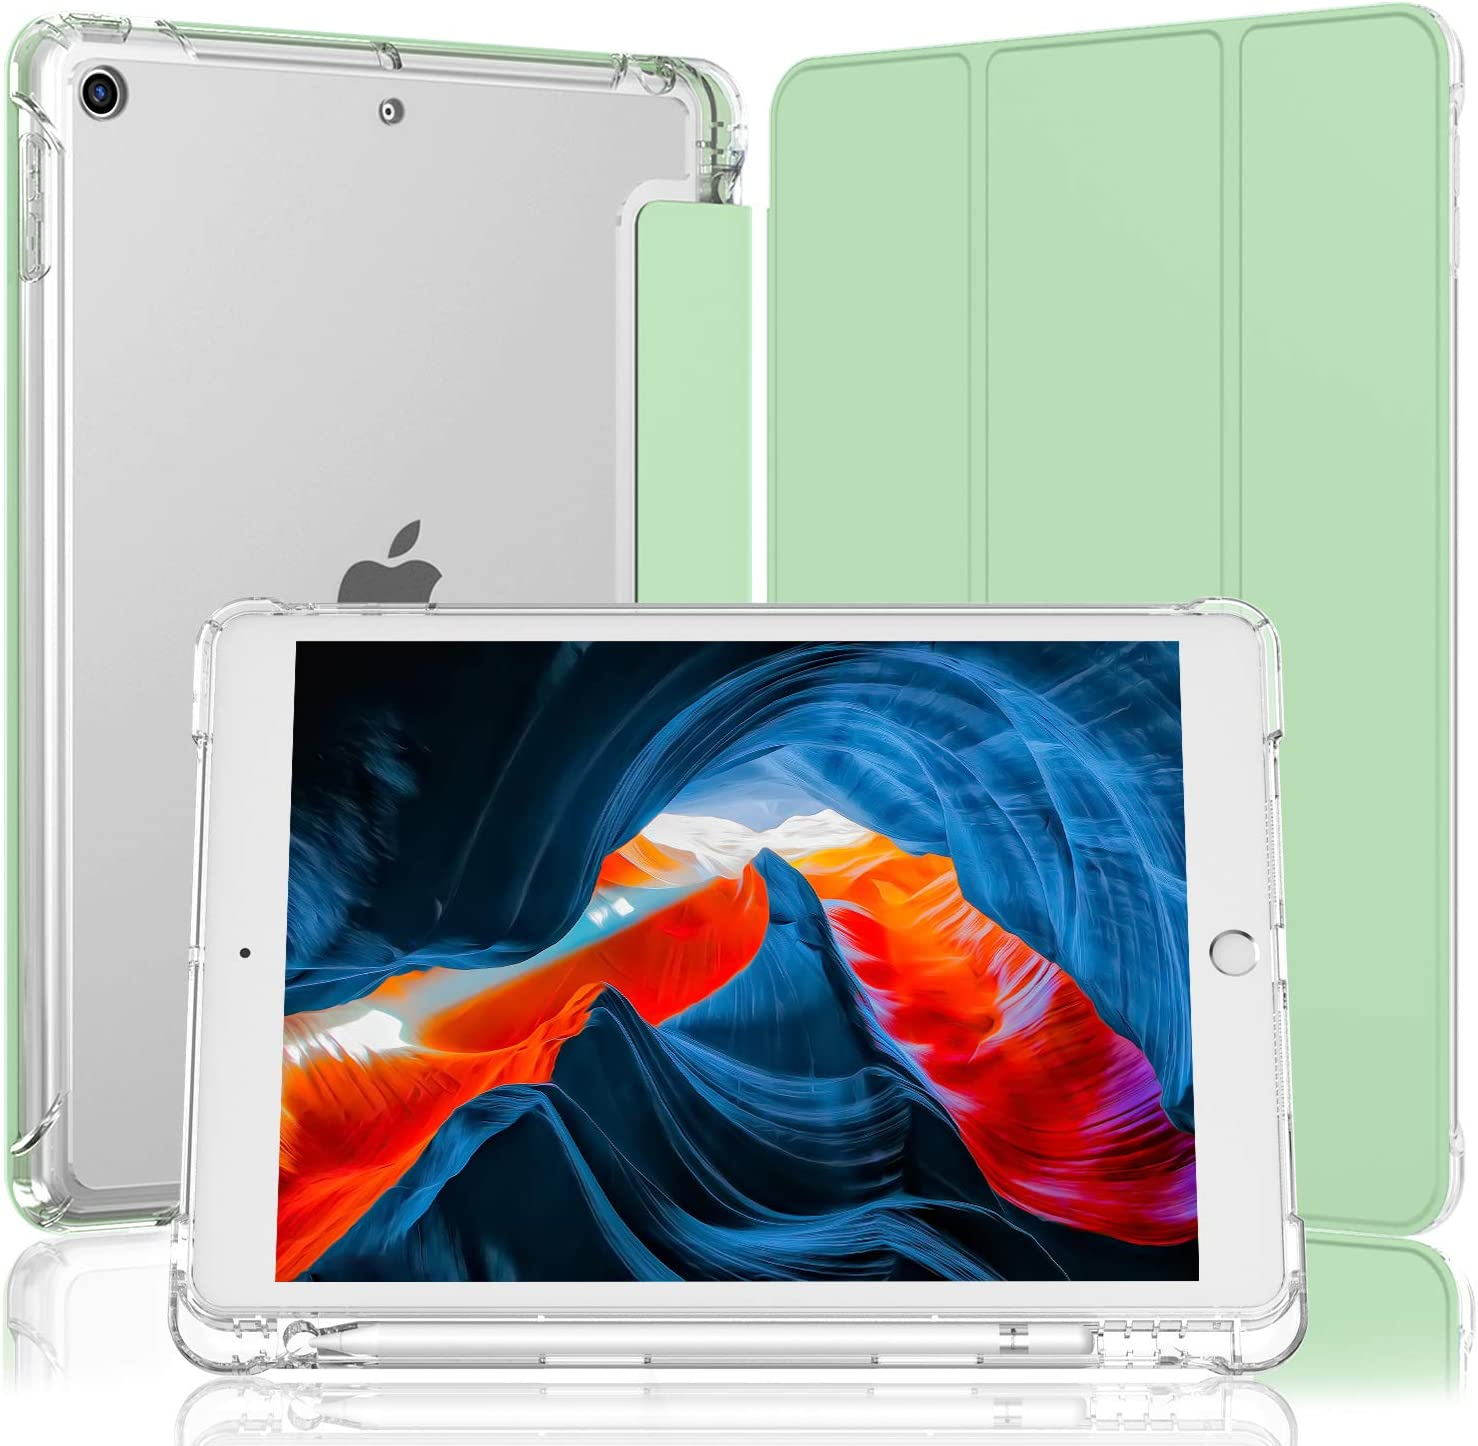 iMieet iPad 8th/7th Generation Case (2020/2019), iPad 10.2 Inch Case with Pencil Holder, Light Weight Soft TPU Translucent Frosted Back Smart Cover Case (Matcha Green)